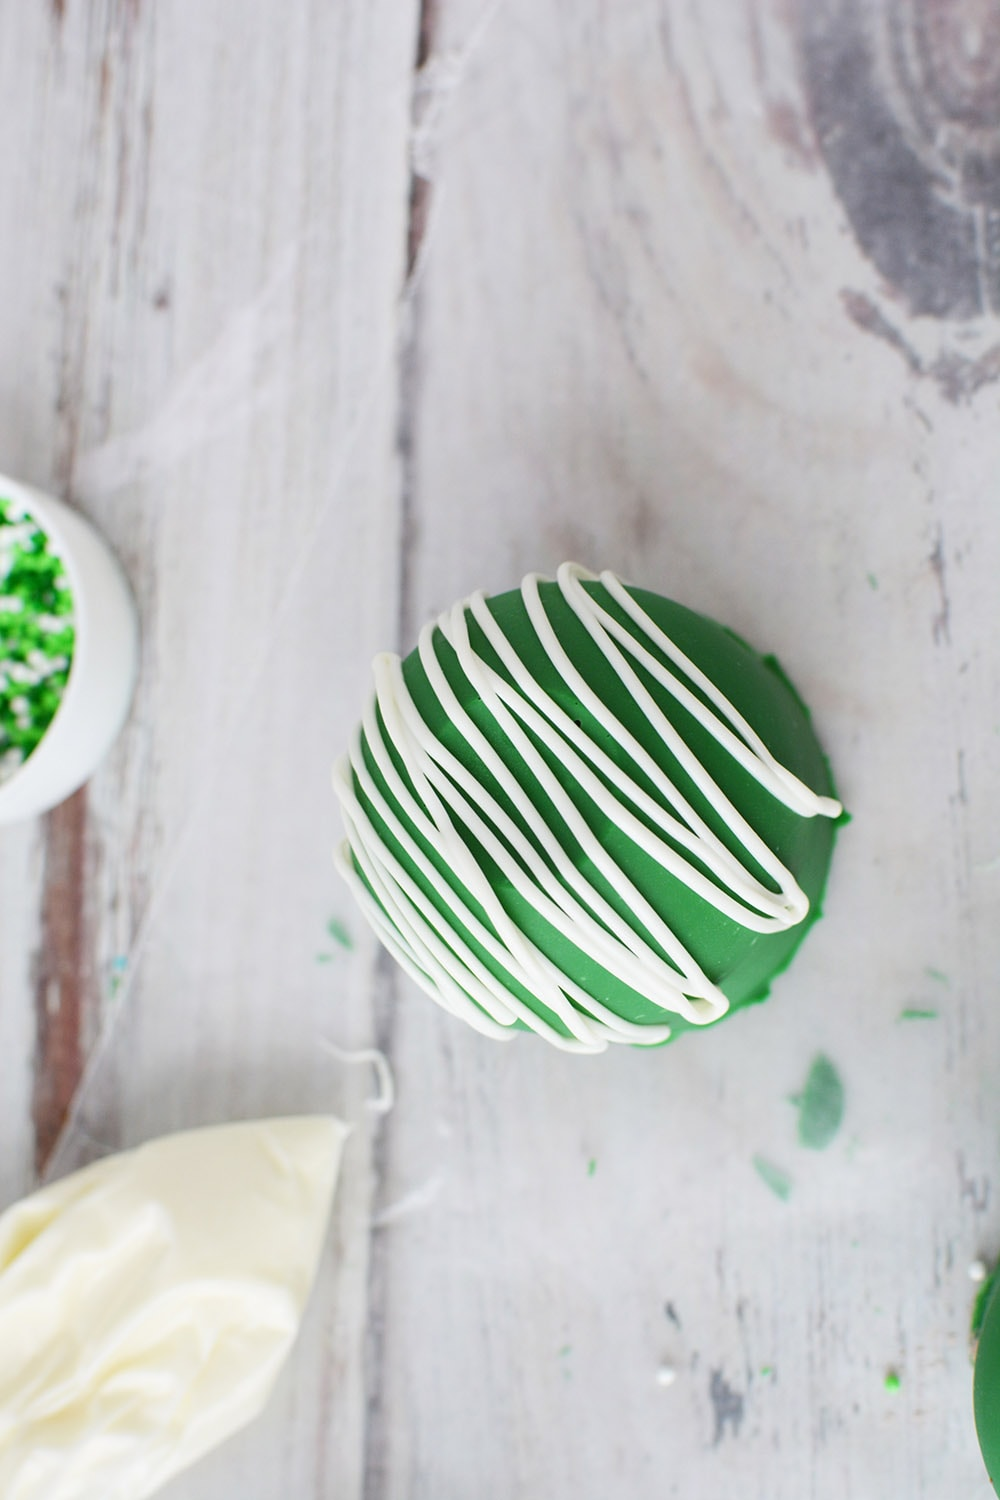 Green cocoa bomb on waxed paper to drizzle white candy topping.